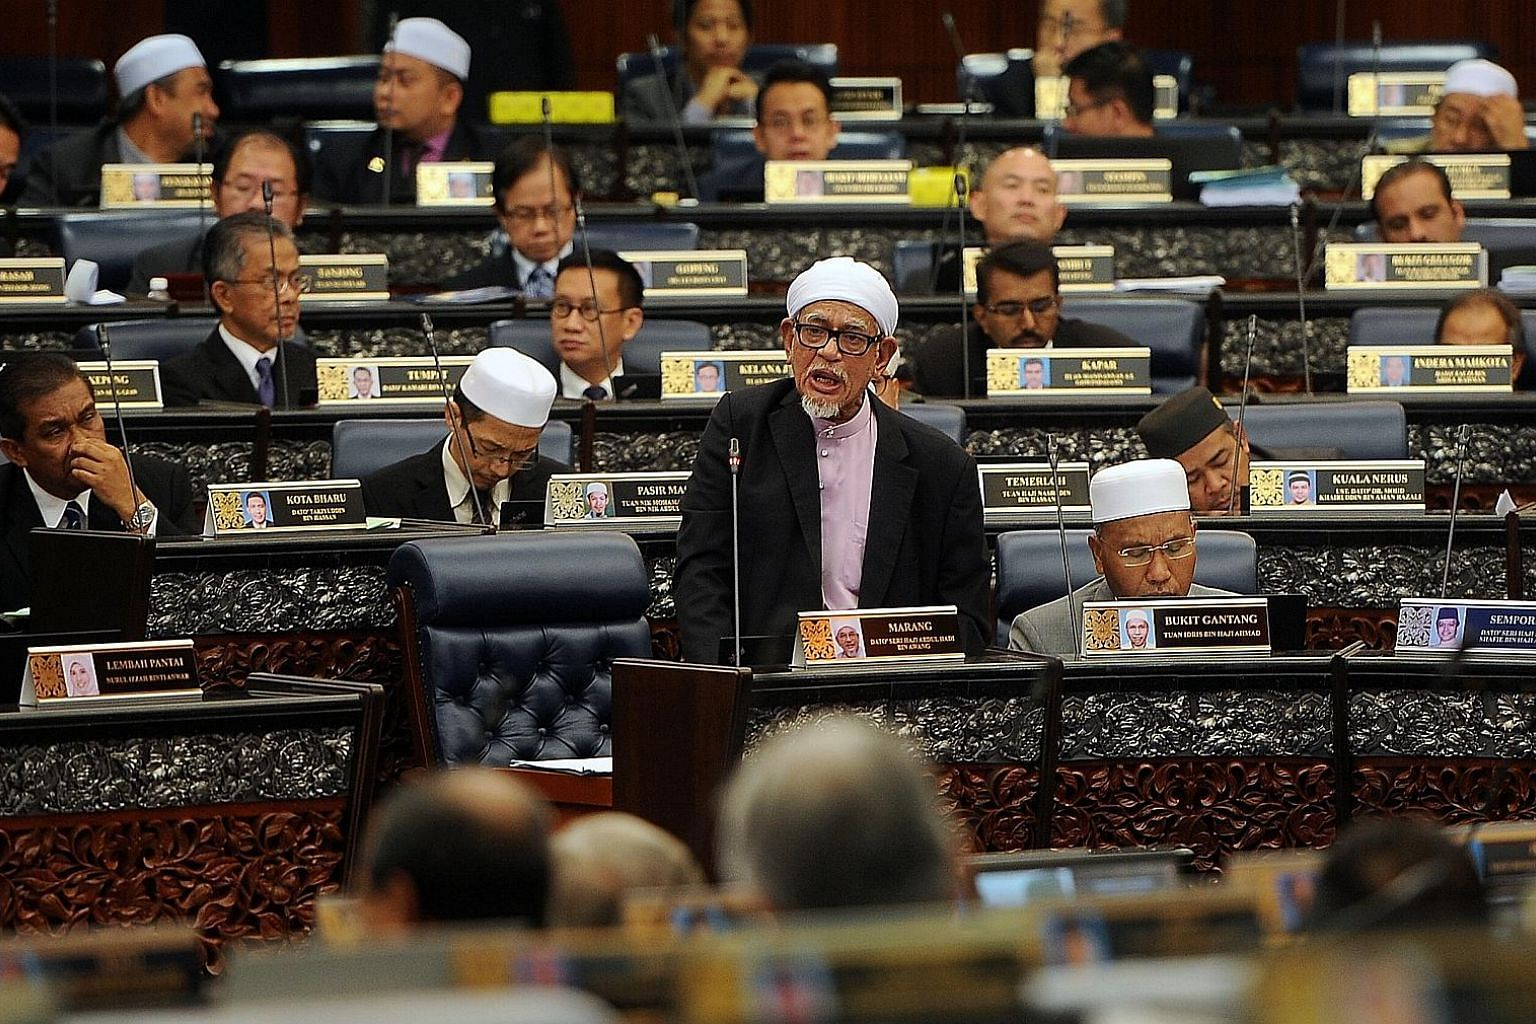 PAS president Abdul Hadi Awang tabling amendments to the Syariah Courts (Criminal Jurisdiction) Act in the Malaysian Parliament on April 6. The Speaker abruptly ended proceedings without allowing dissenting debate or a vote.